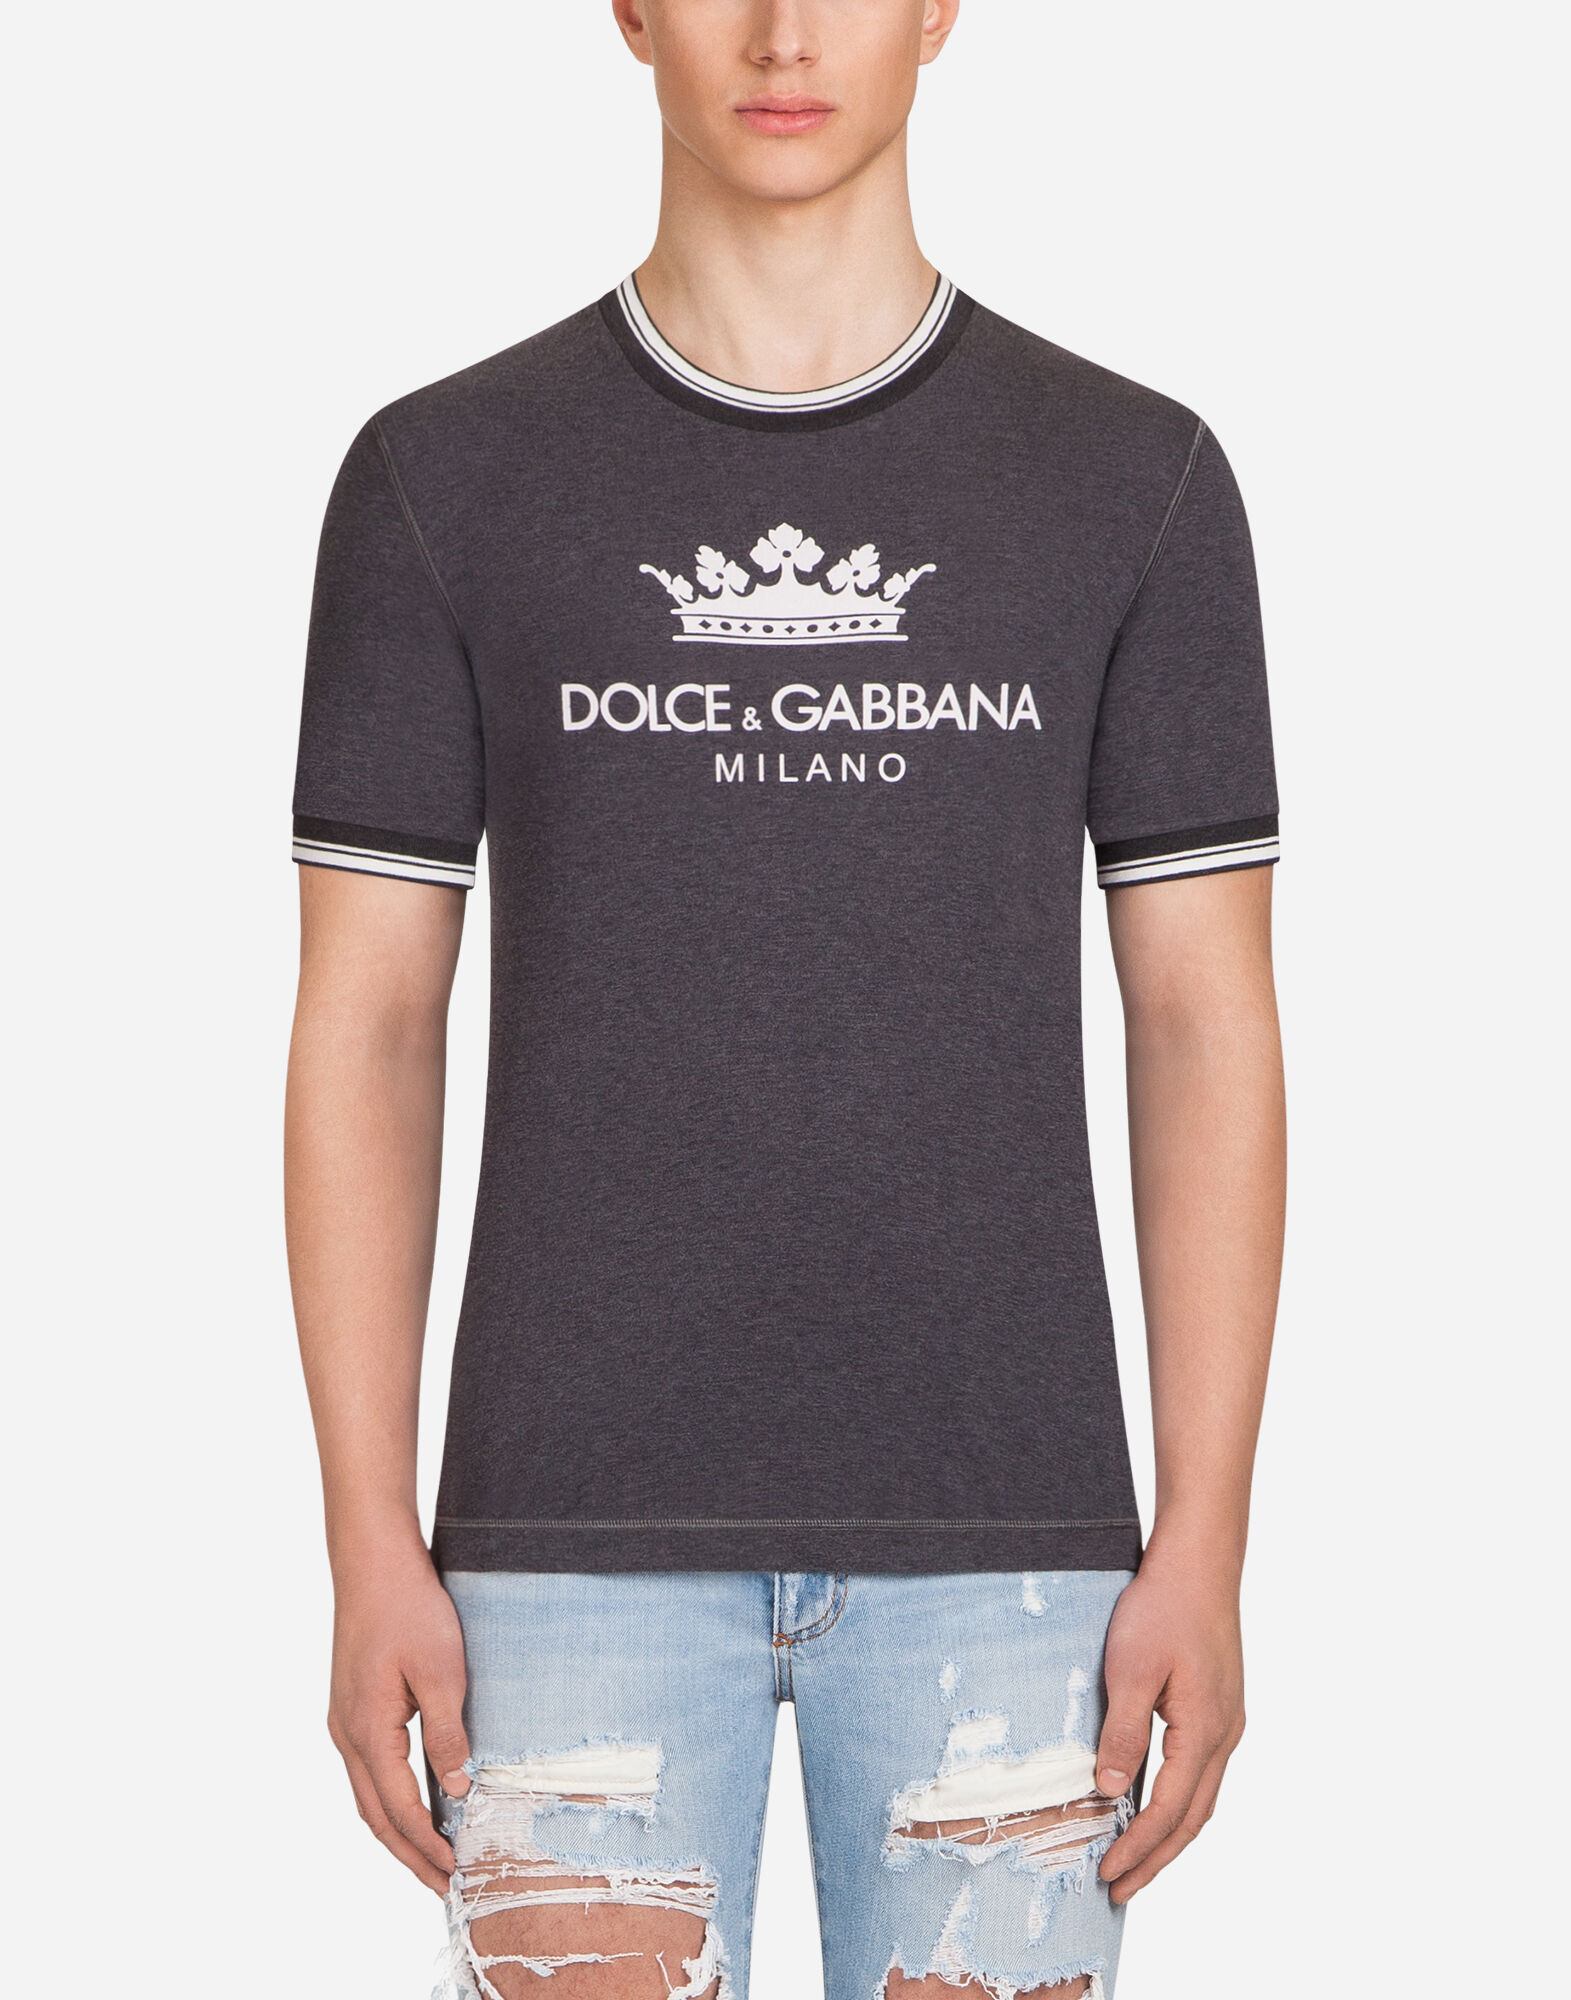 PRINTED COTTON T-SHIRT from DOLCE & GABBANA